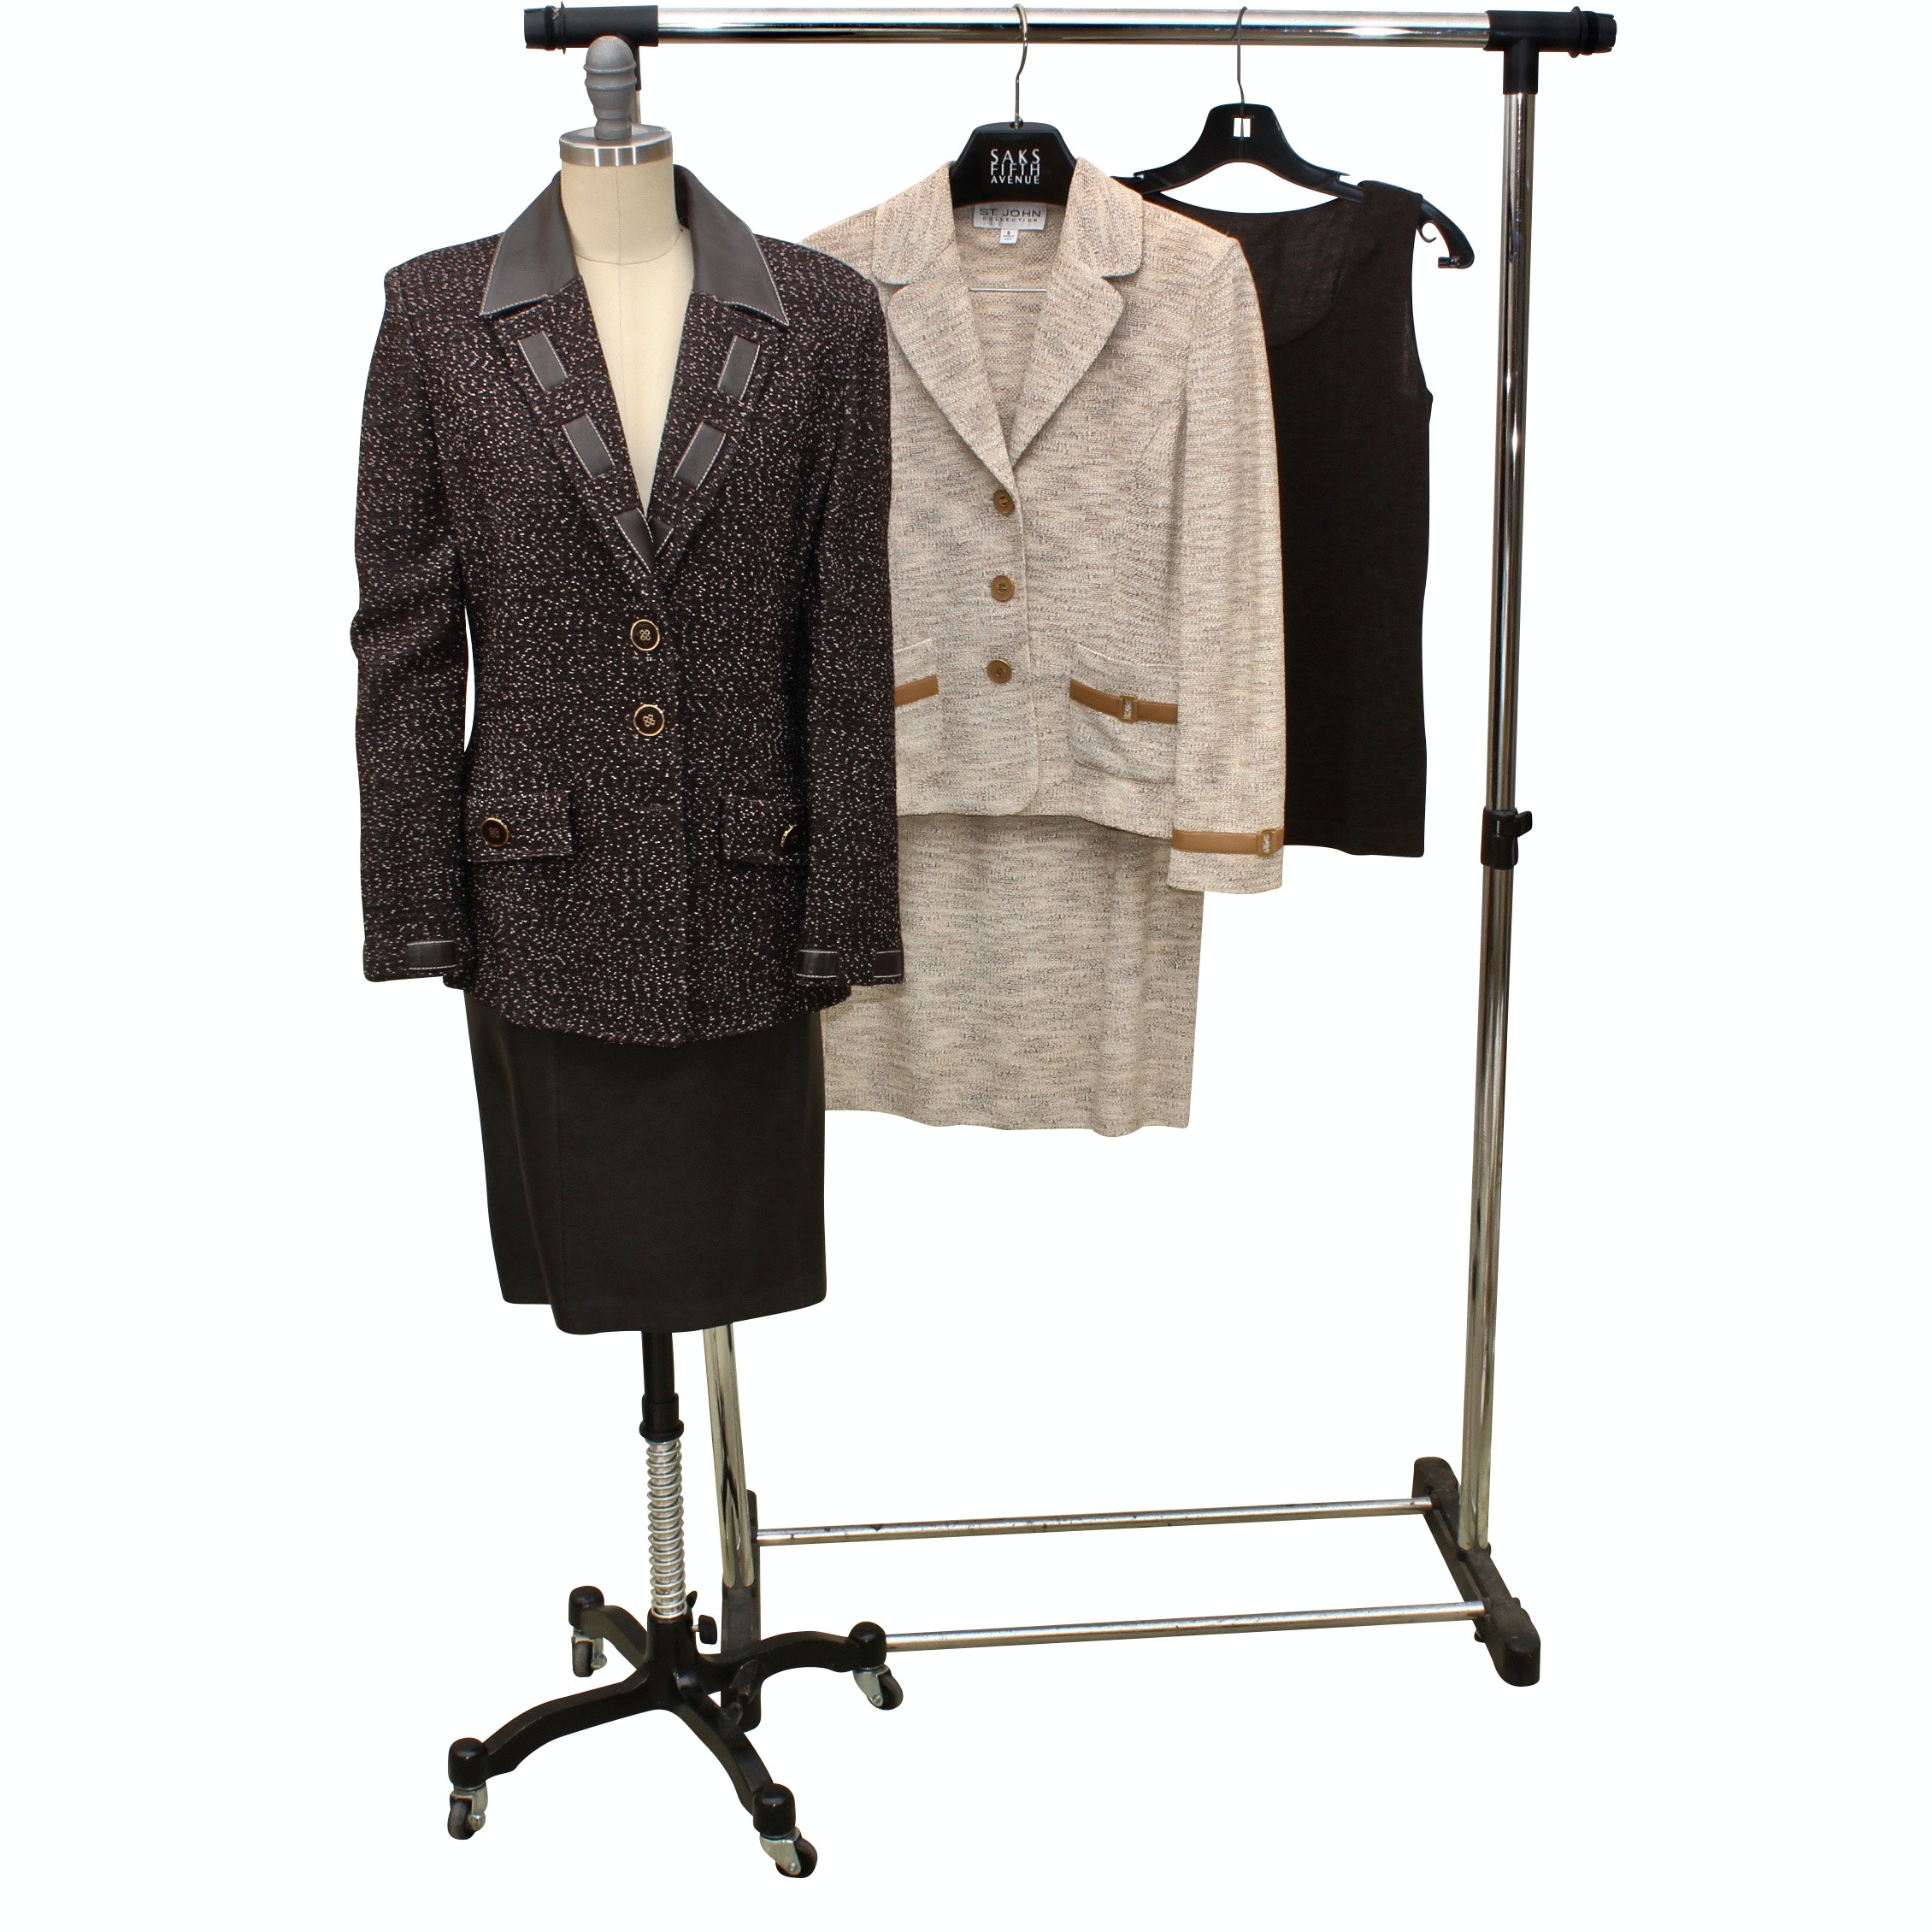 St. John and Lafayette 148 Women's Skirt Suit and Separates